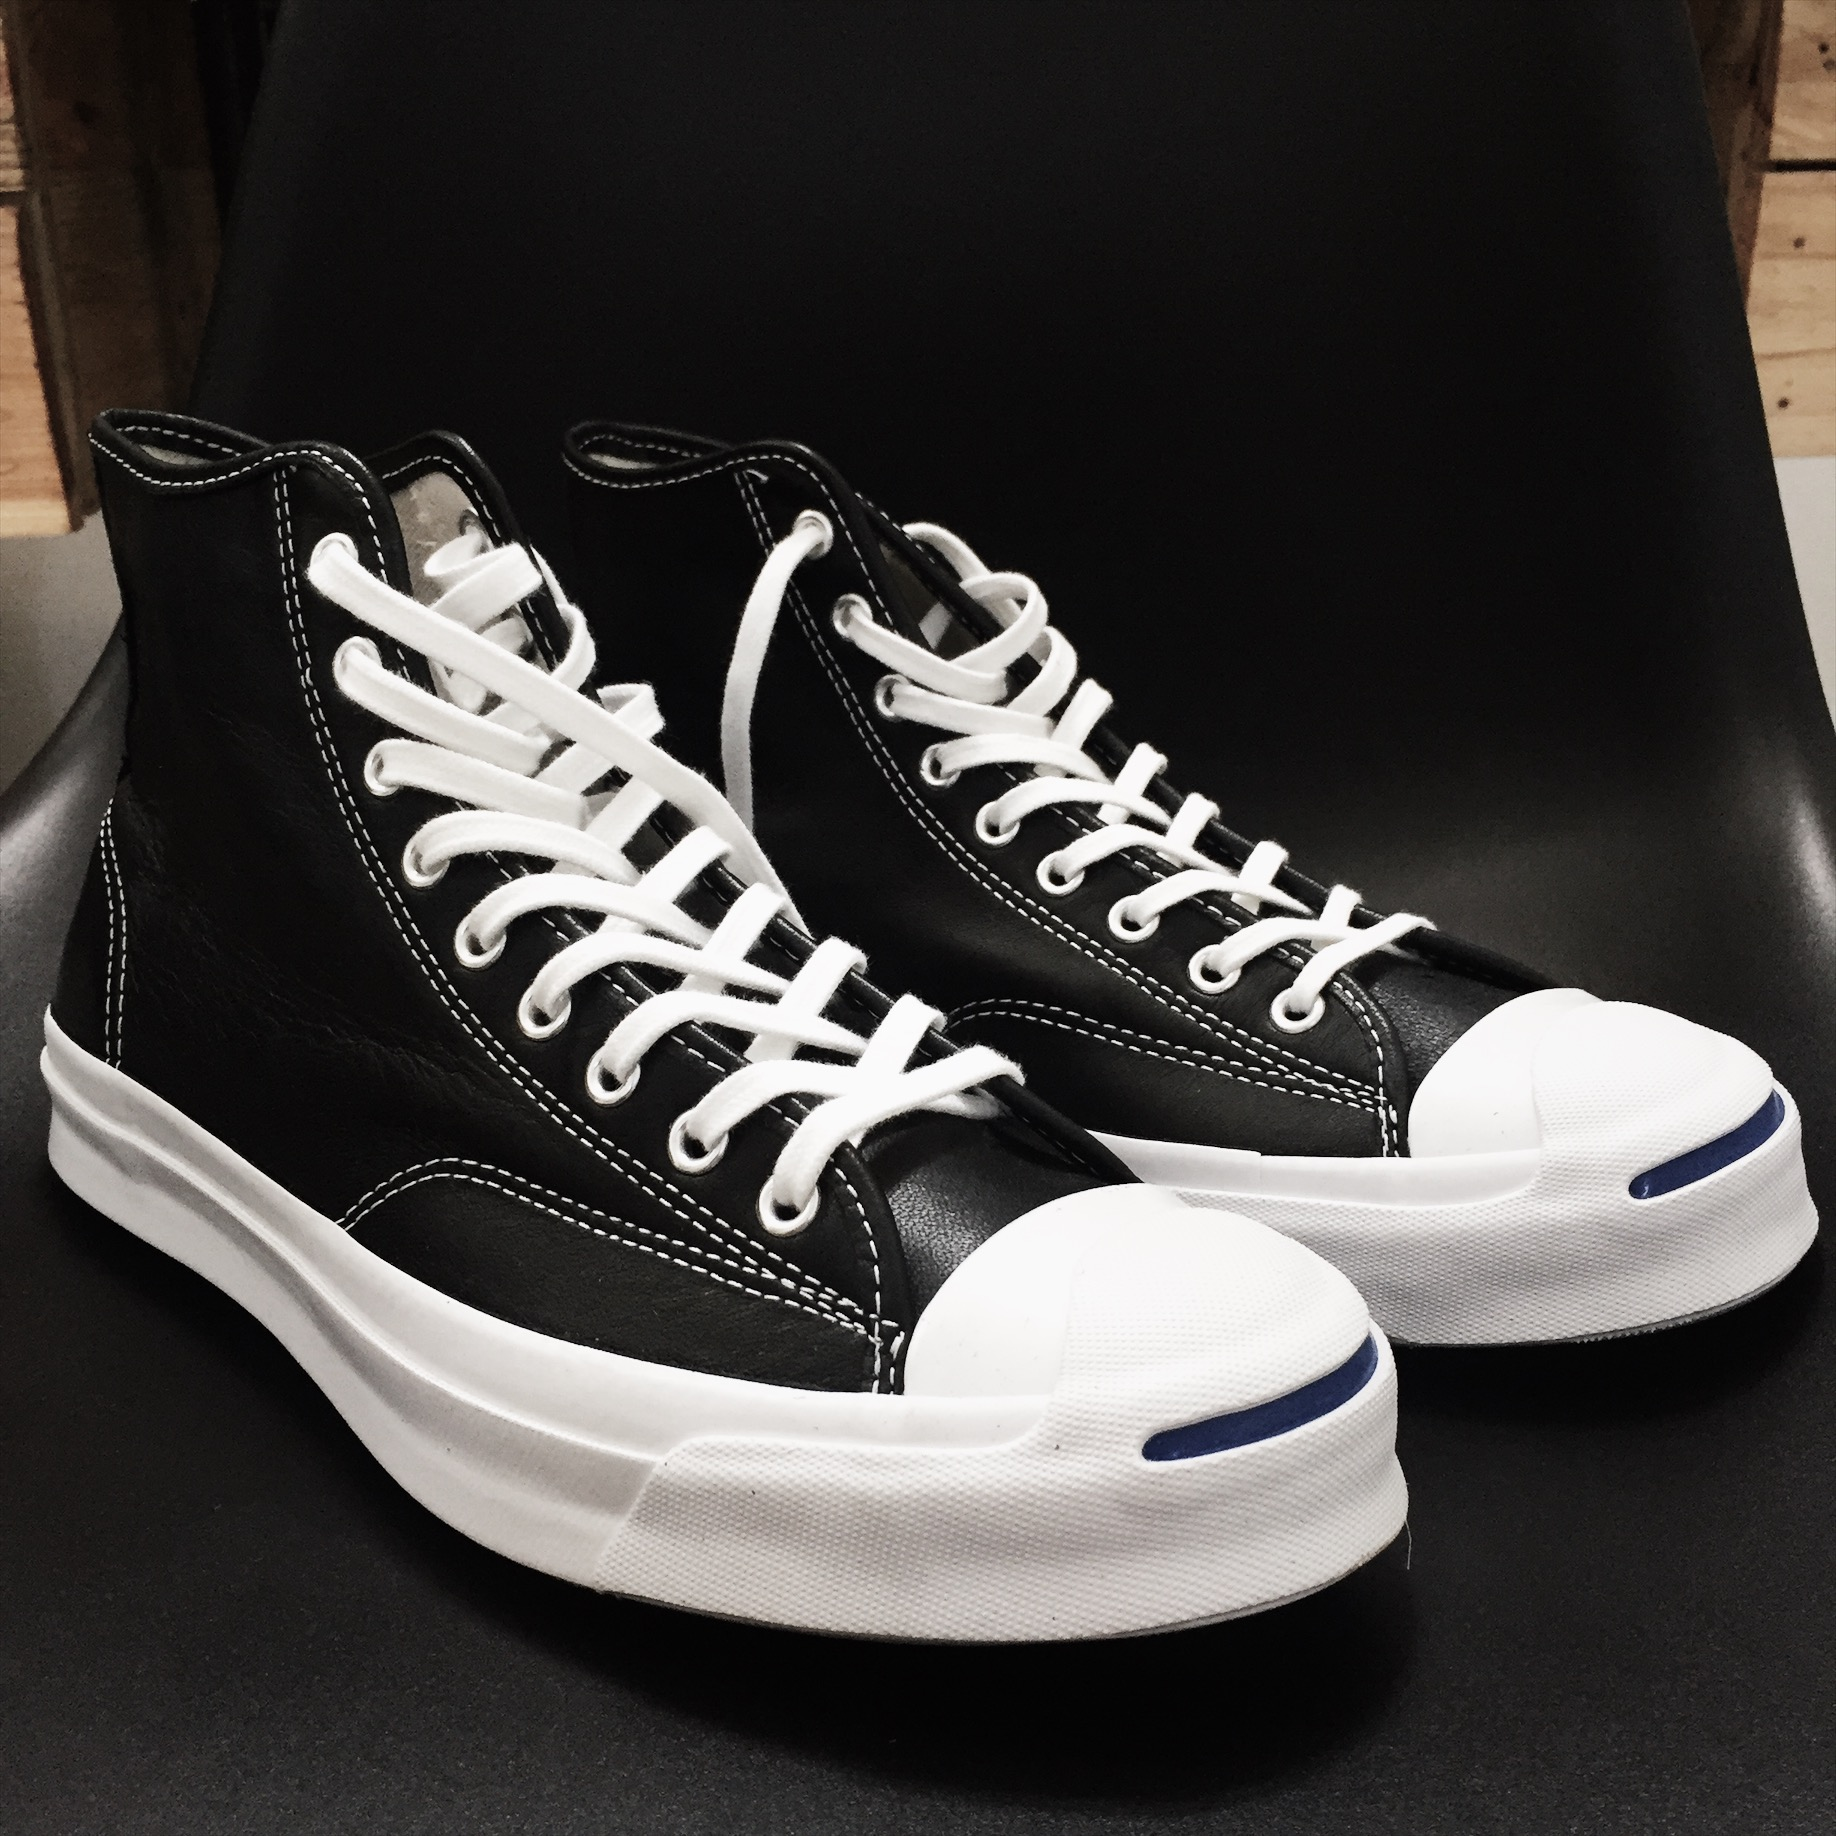 Jual Converse Jack Purcell Signature High (Black white) - Wooze ... 7ed2c42182